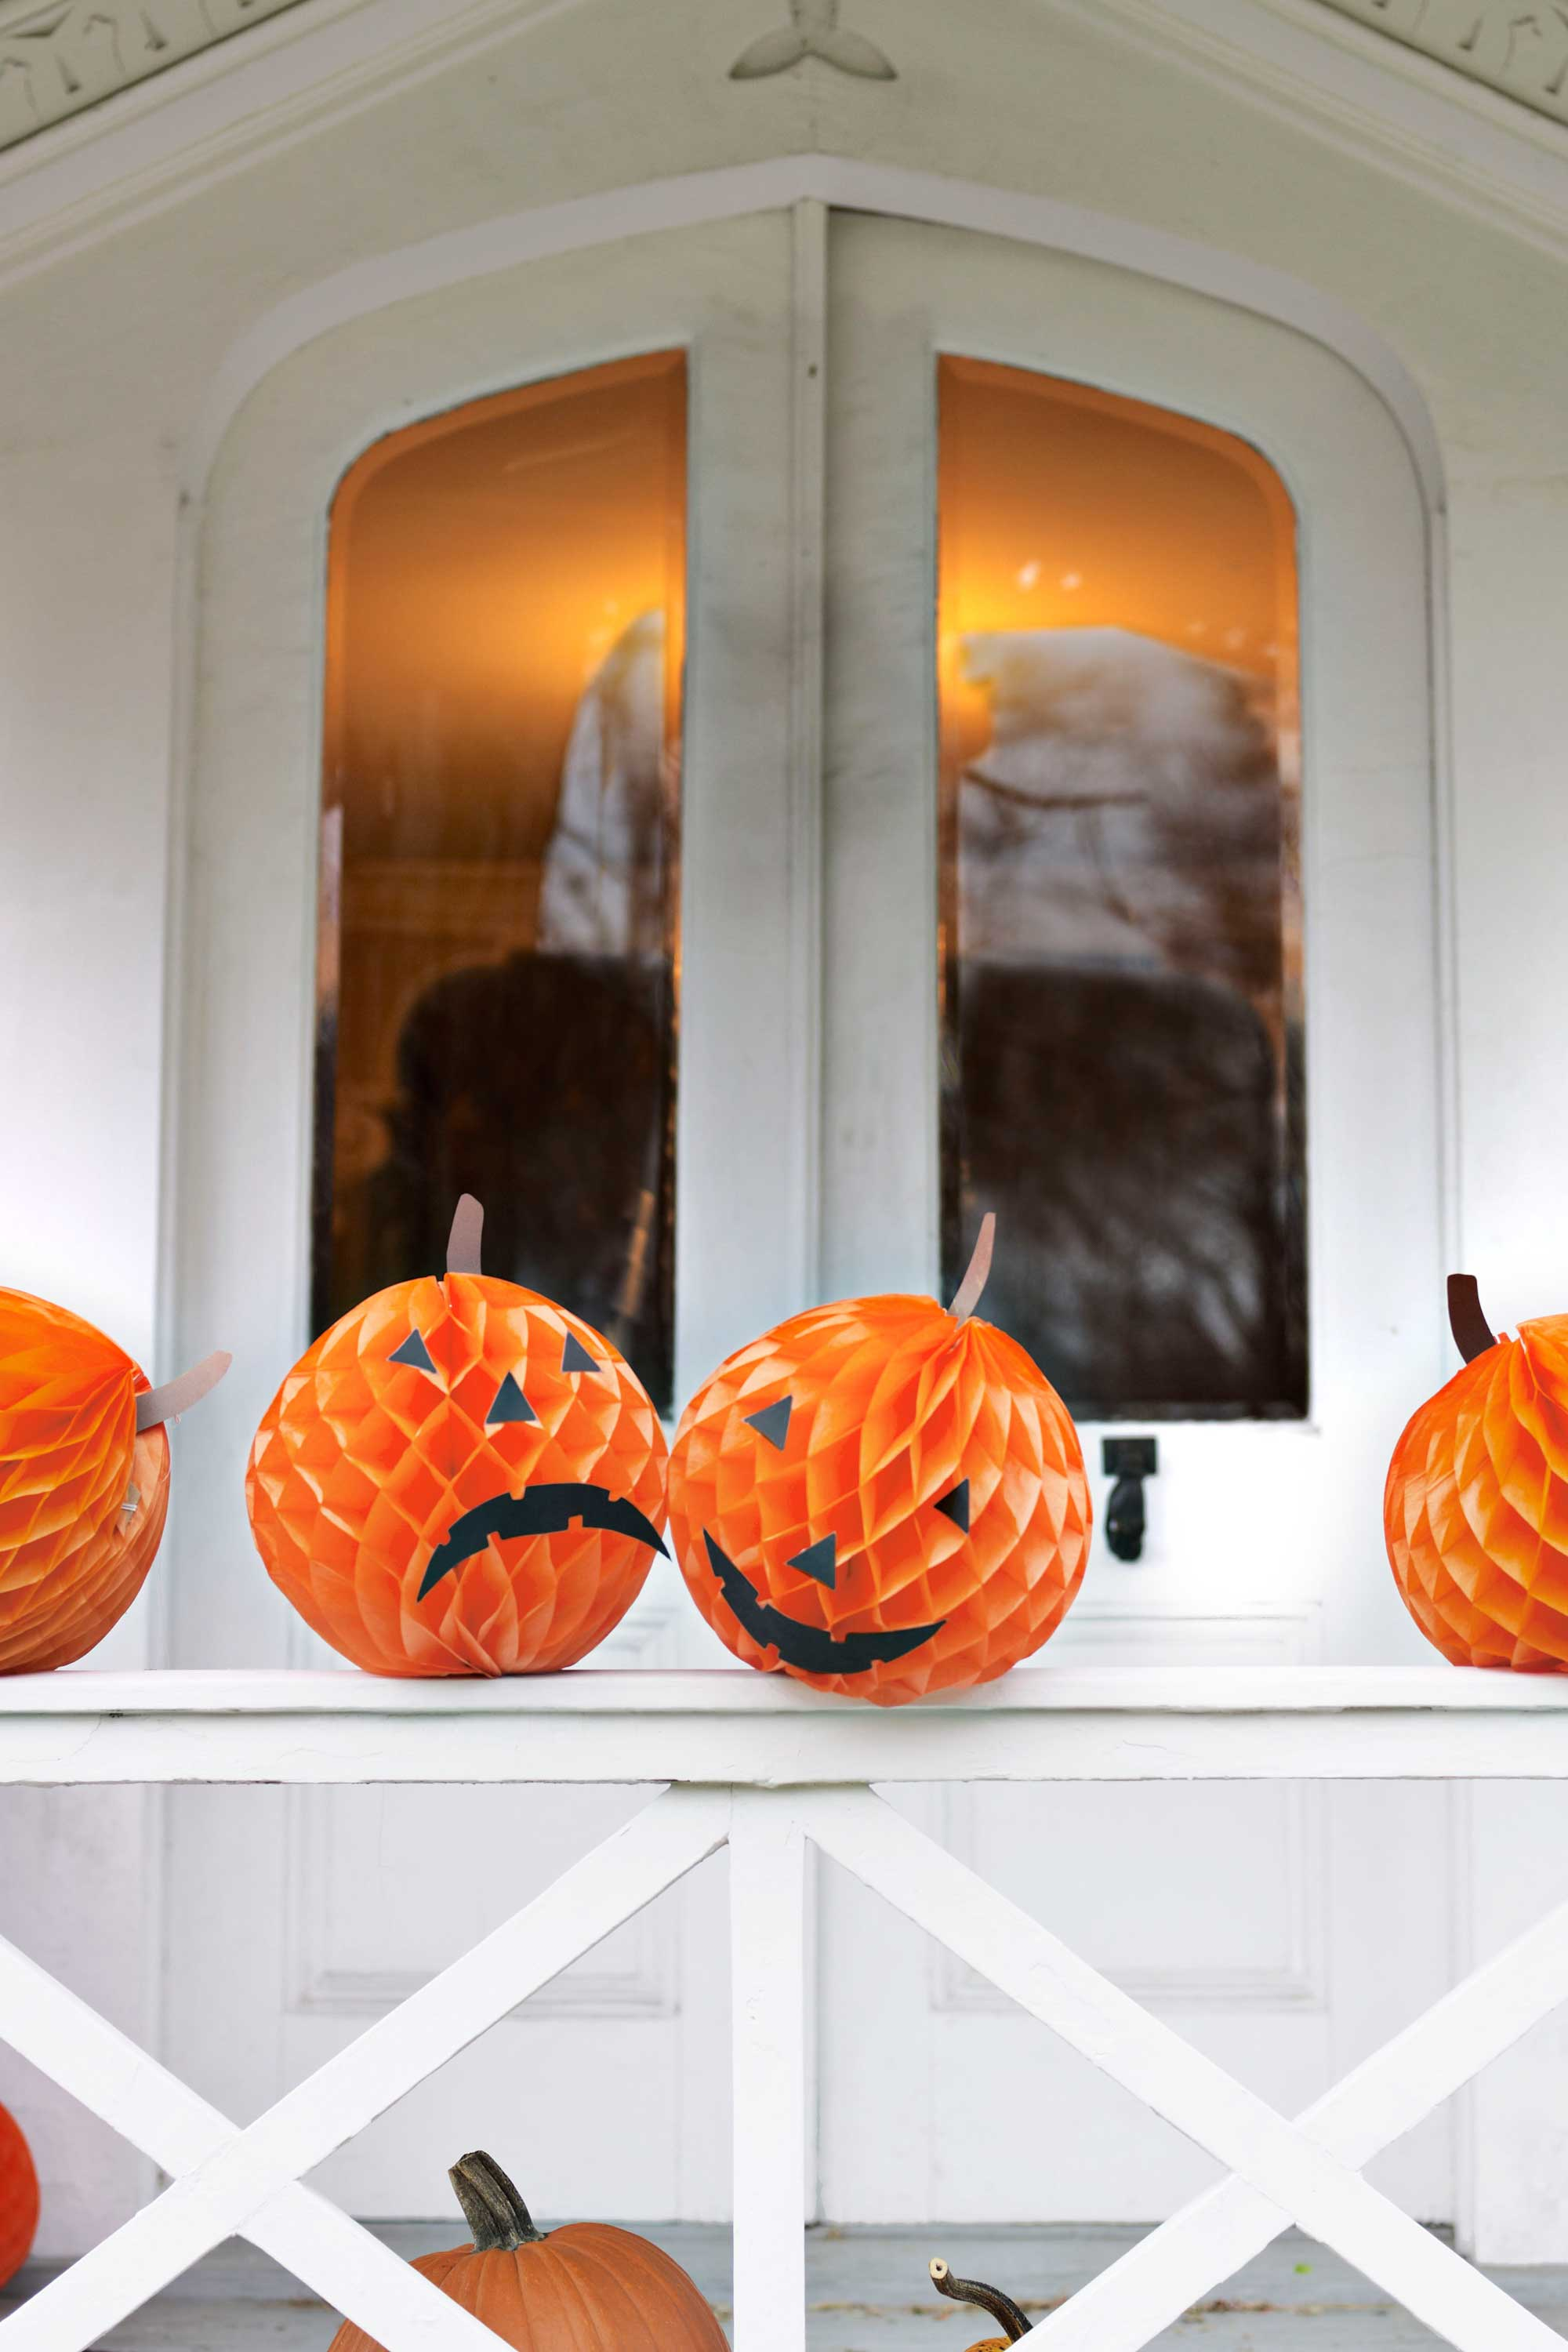 40 easy diy halloween decorations homemade do it yourself halloween decor ideas - Halloween Decorations Pumpkins